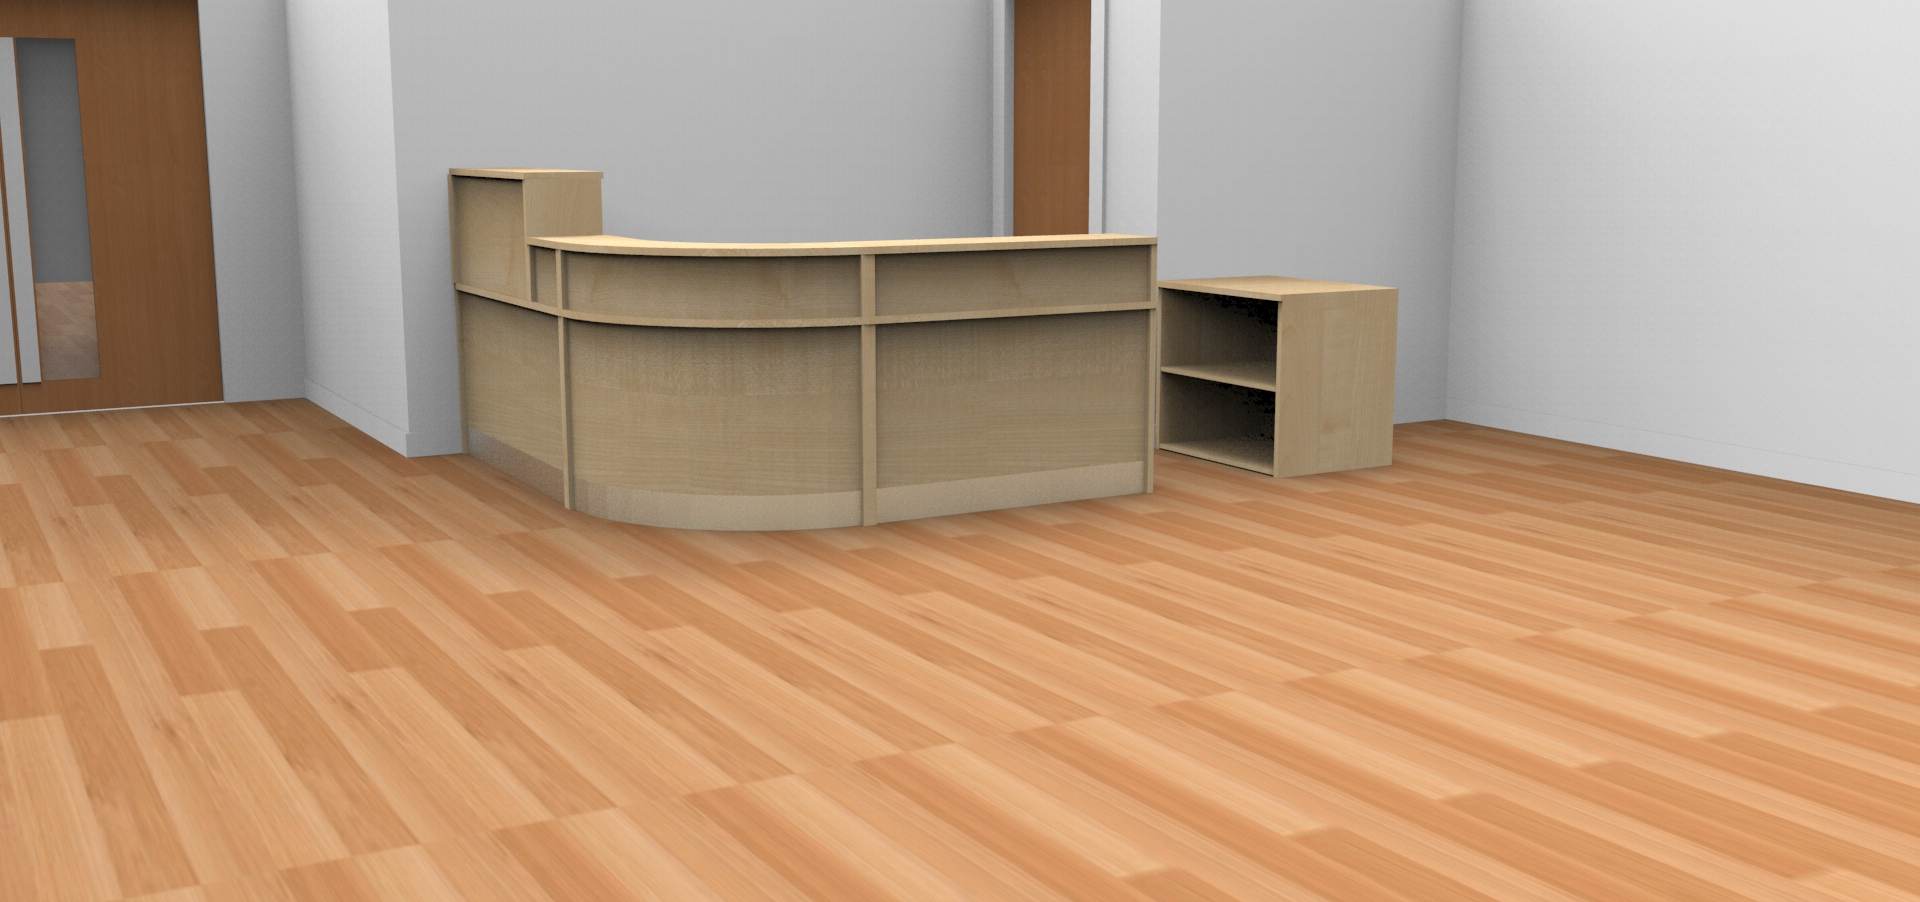 Render- Bespoke Flex reception desk with high and low top units finished in Maple